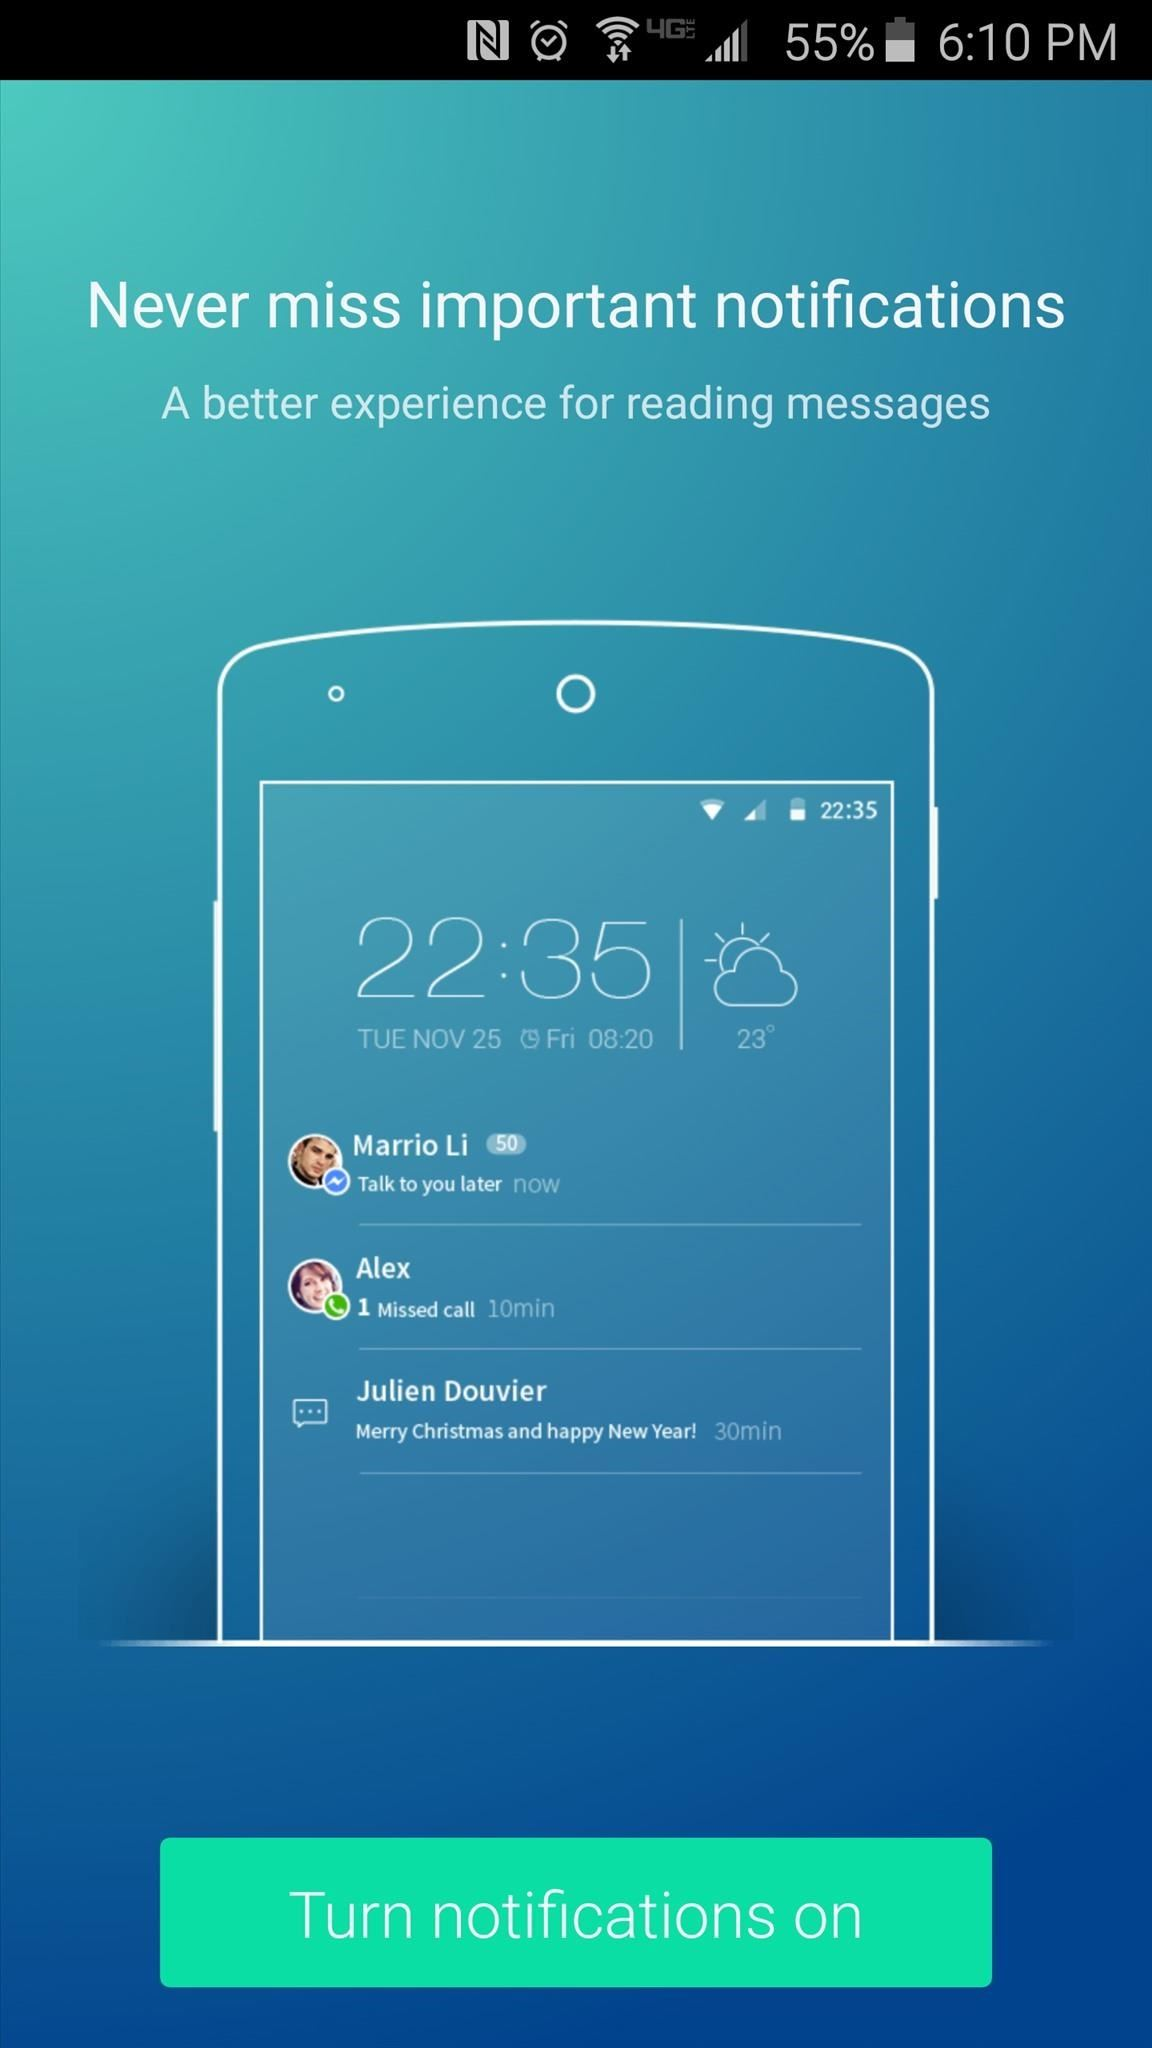 Get a Feature-Packed, iPhone-Like Lock Screen for Your Galaxy S6 or Other Android Device